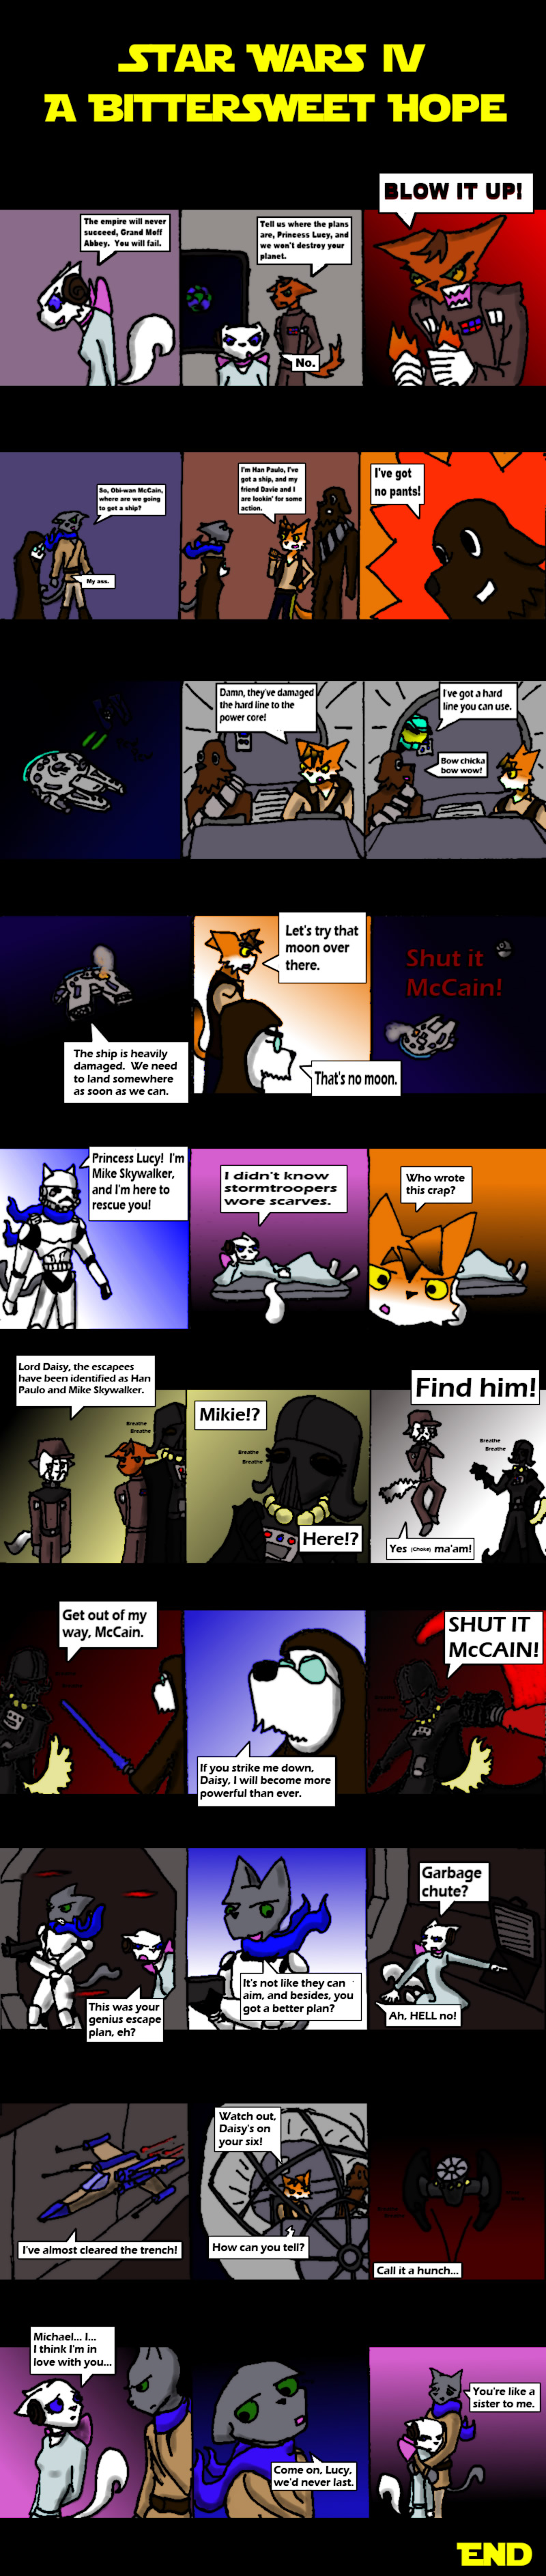 Candybooru image #3729, tagged with Abbey Augustus Comedy_(Artist) Daisy David Lucy McCain Mike Paulo guest_comic parody